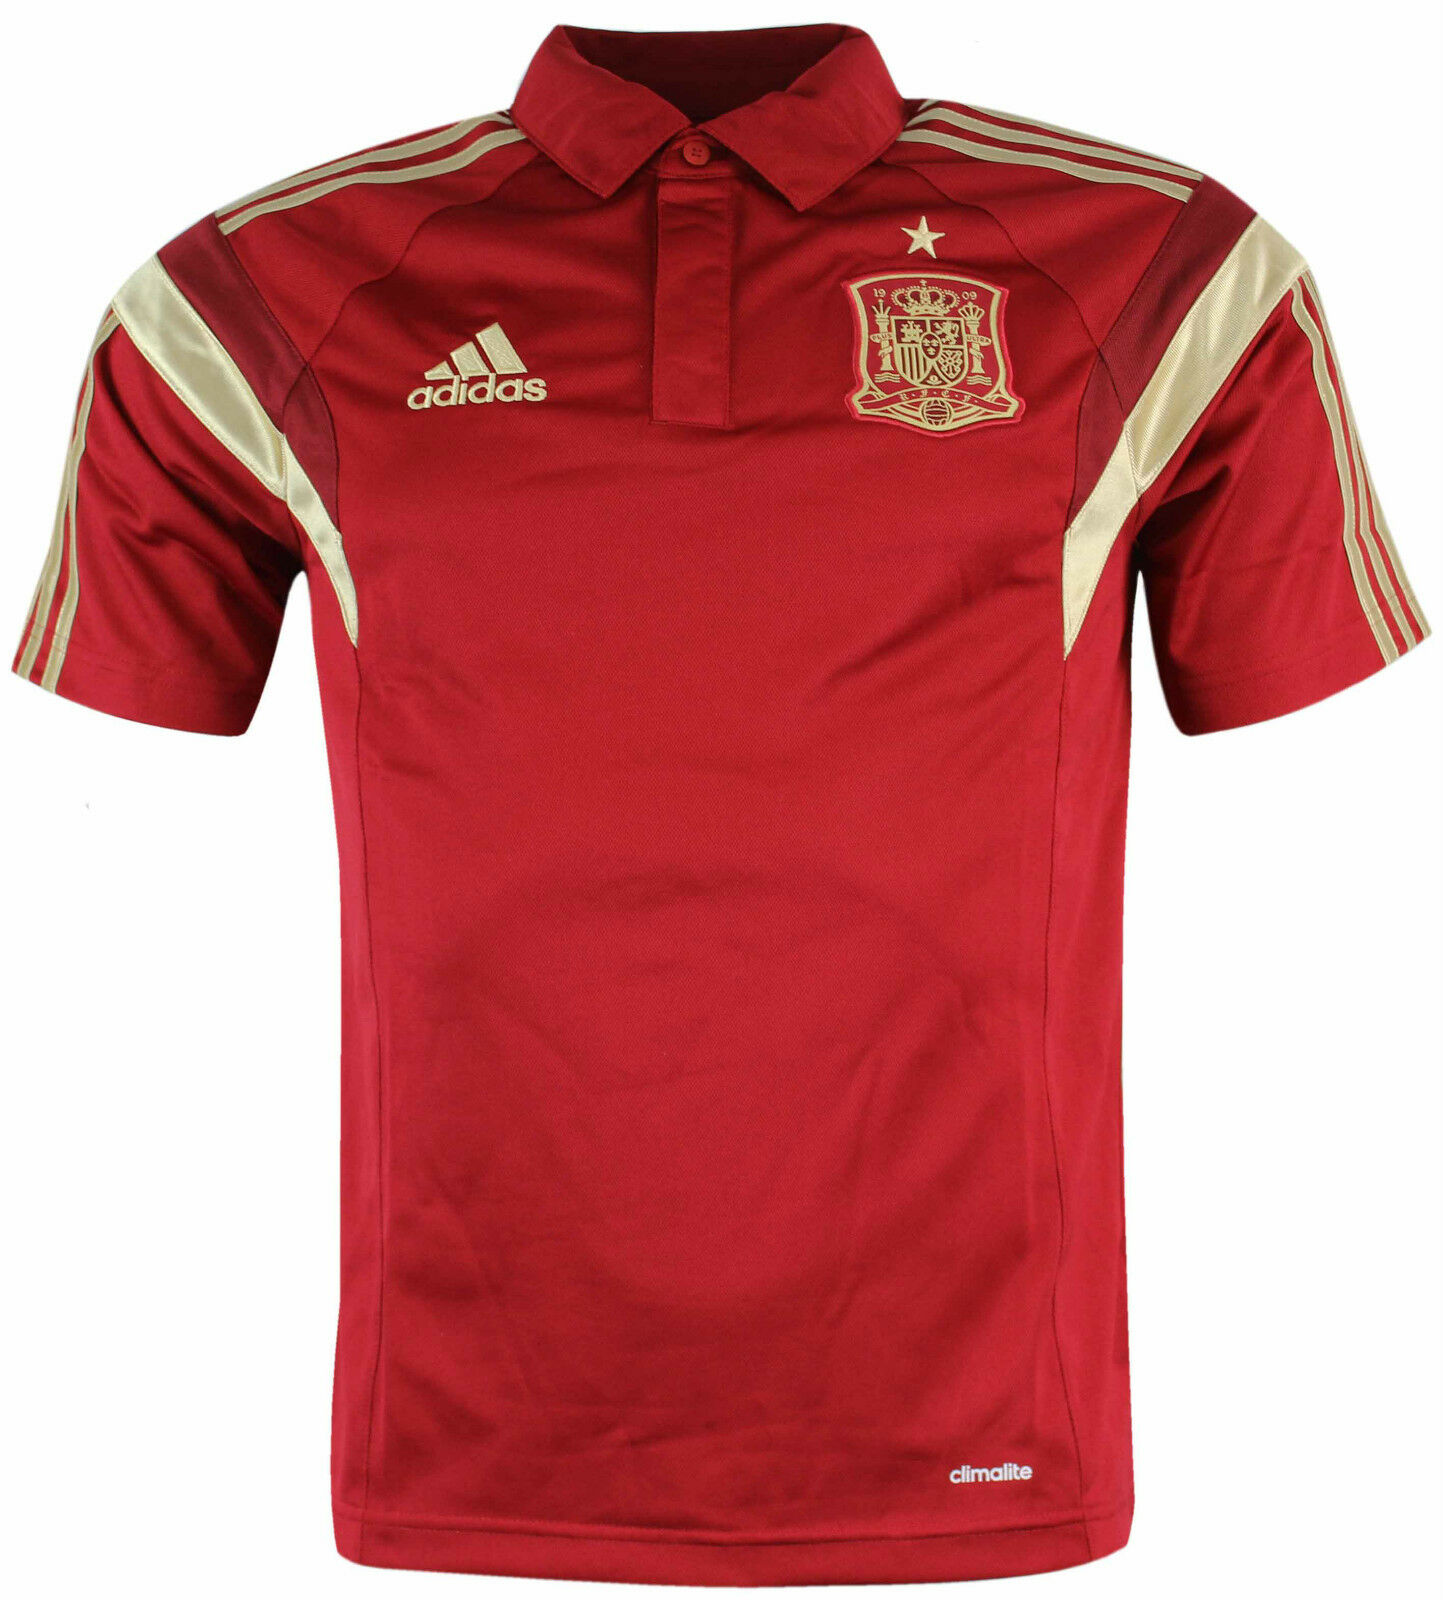 Adidas fef climalite spain polo shirt red top casual for Spain polo shirt 2014